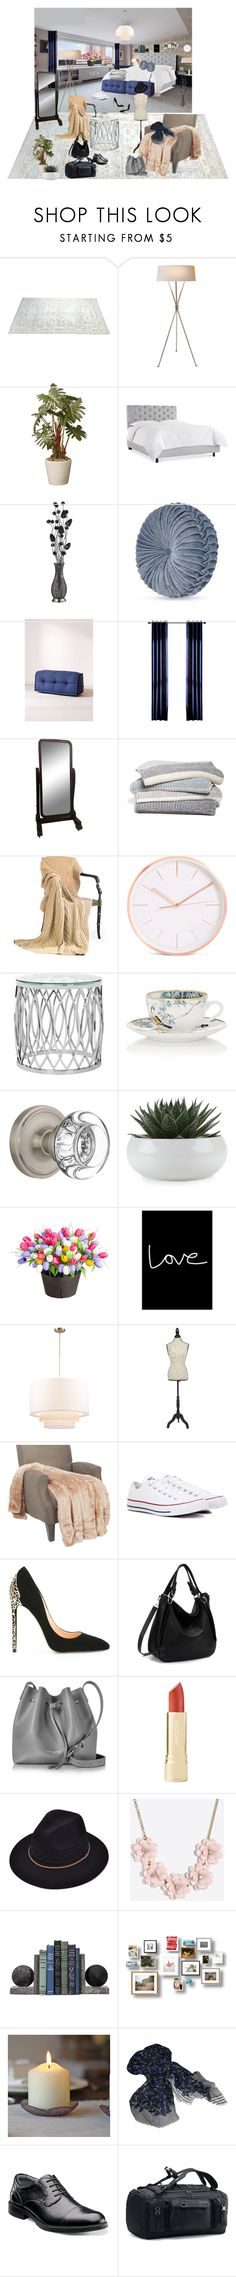 """""""A bedroom"""" by chigera ❤ liked on Polyvore featuring interior, interiors, interior design, home, home decor, interior decorating, Dimond, J. Queen New York, Urban Outfitters and Barefoot Dreams"""